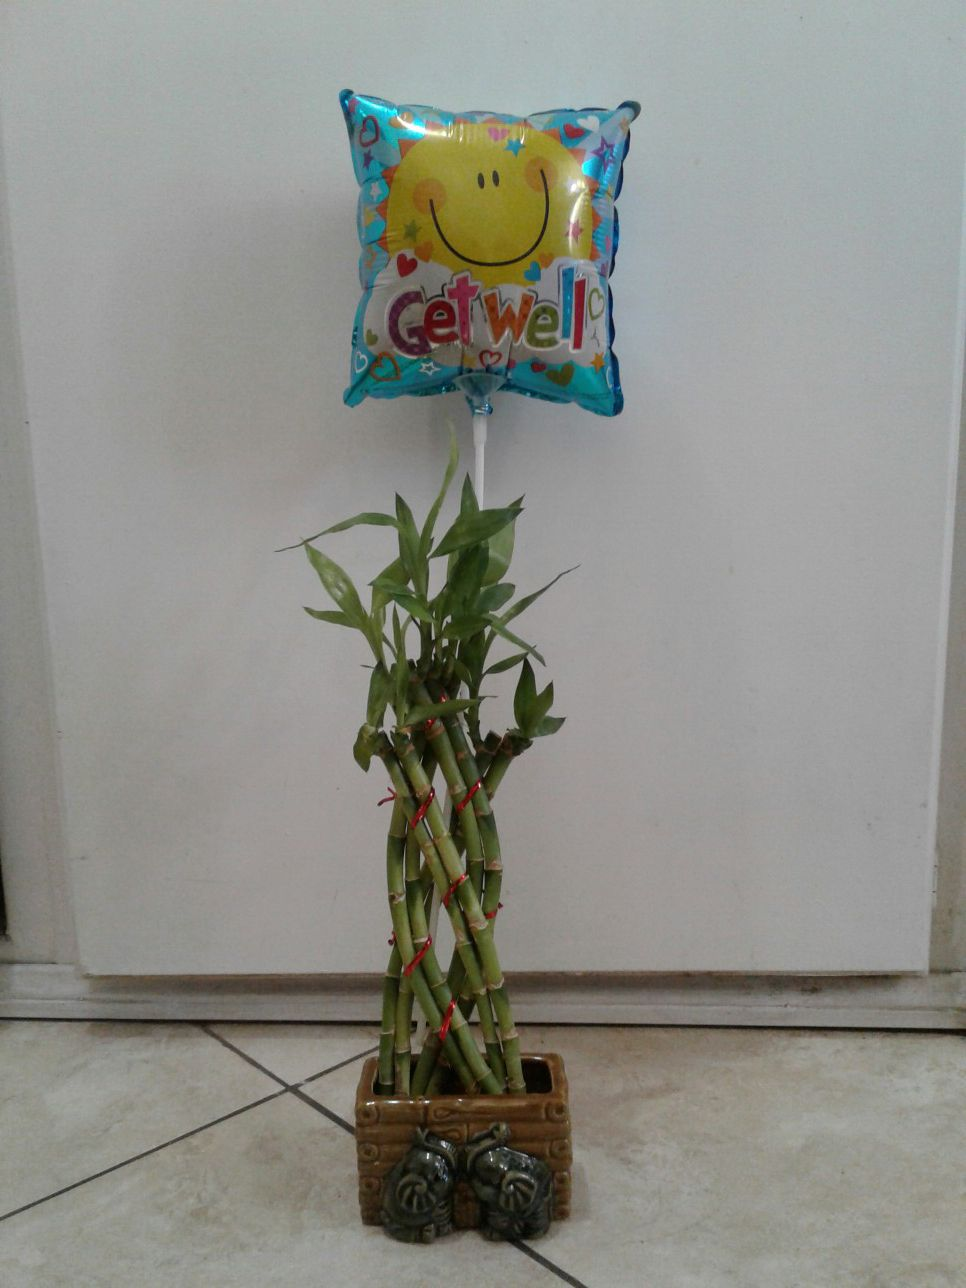 Bamboo plant with get well balloon